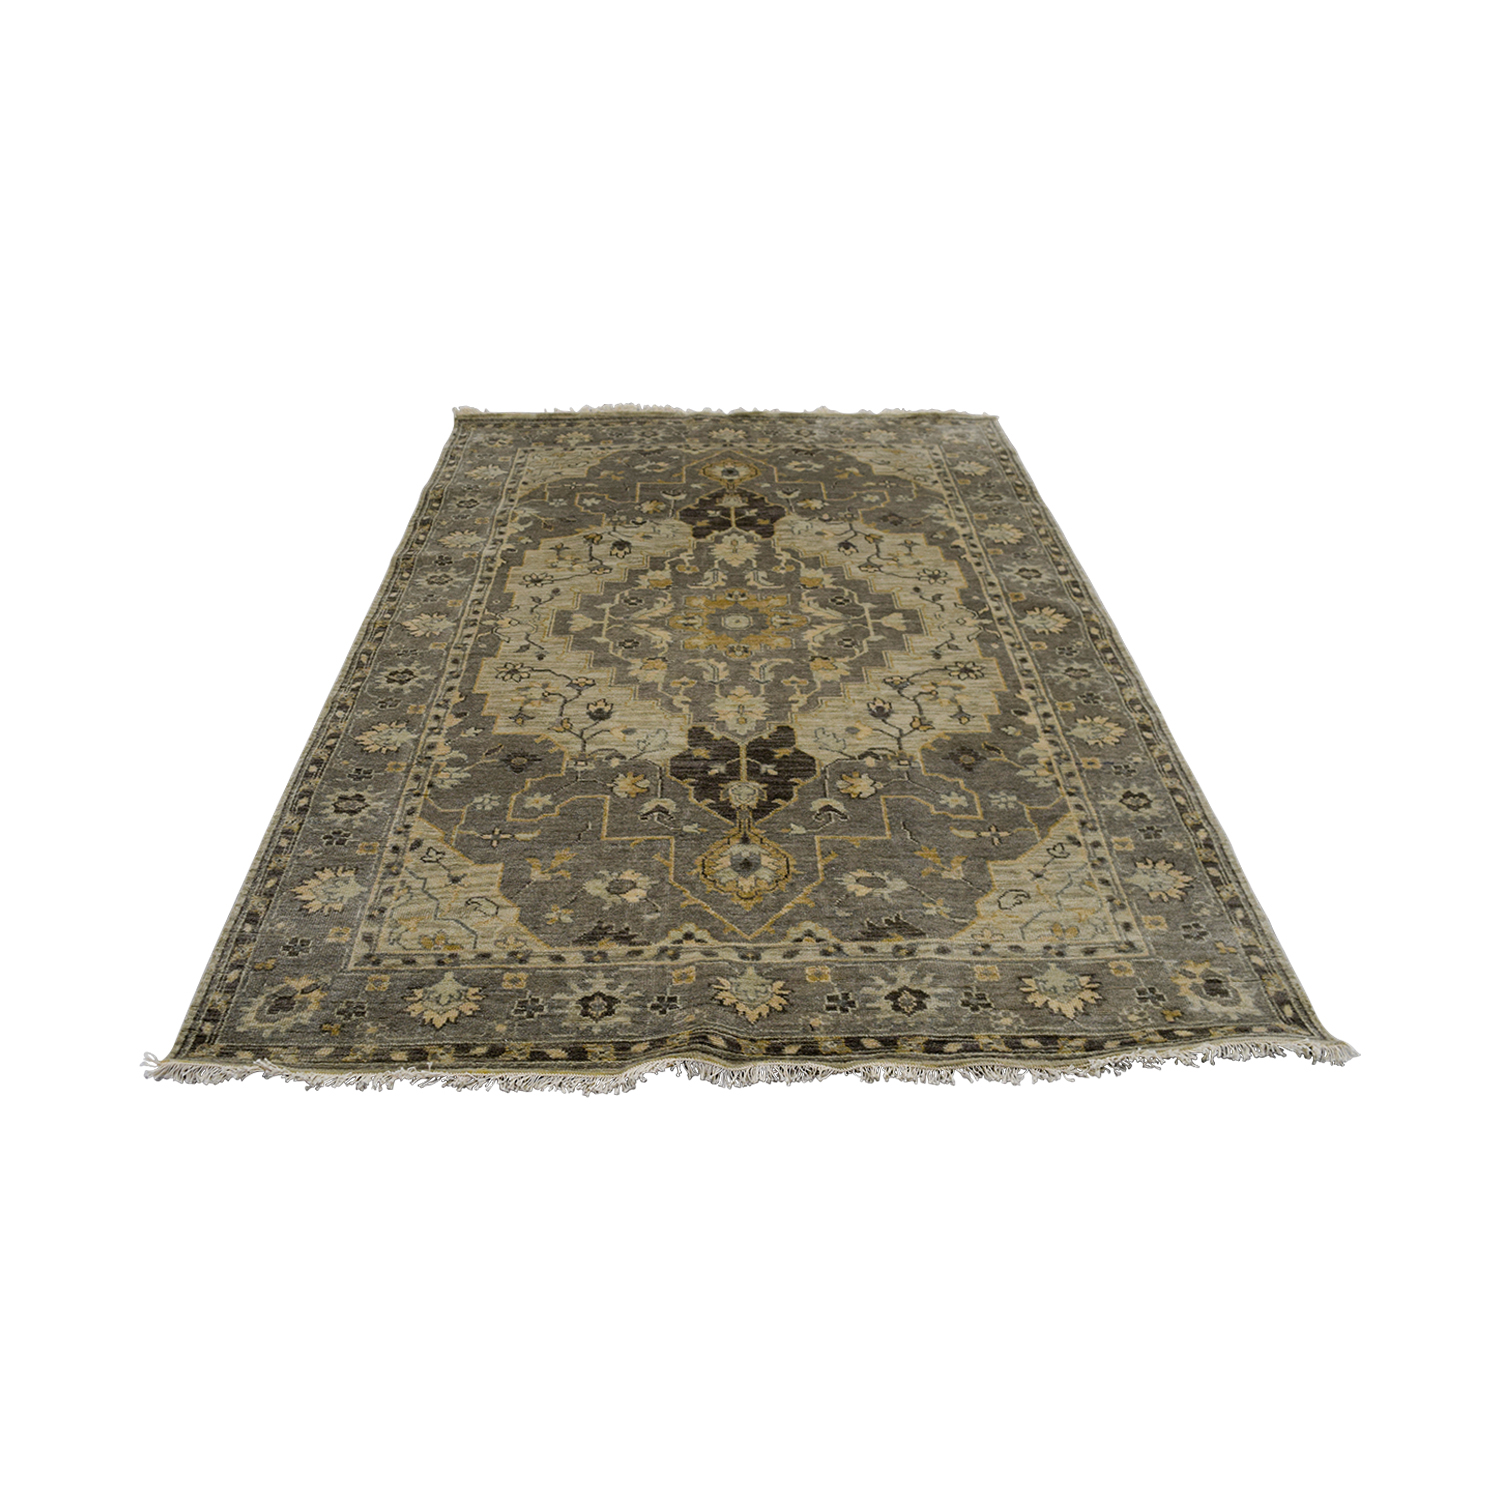 Obeetee Obeetee Hand Knotted Gray Wool Rug